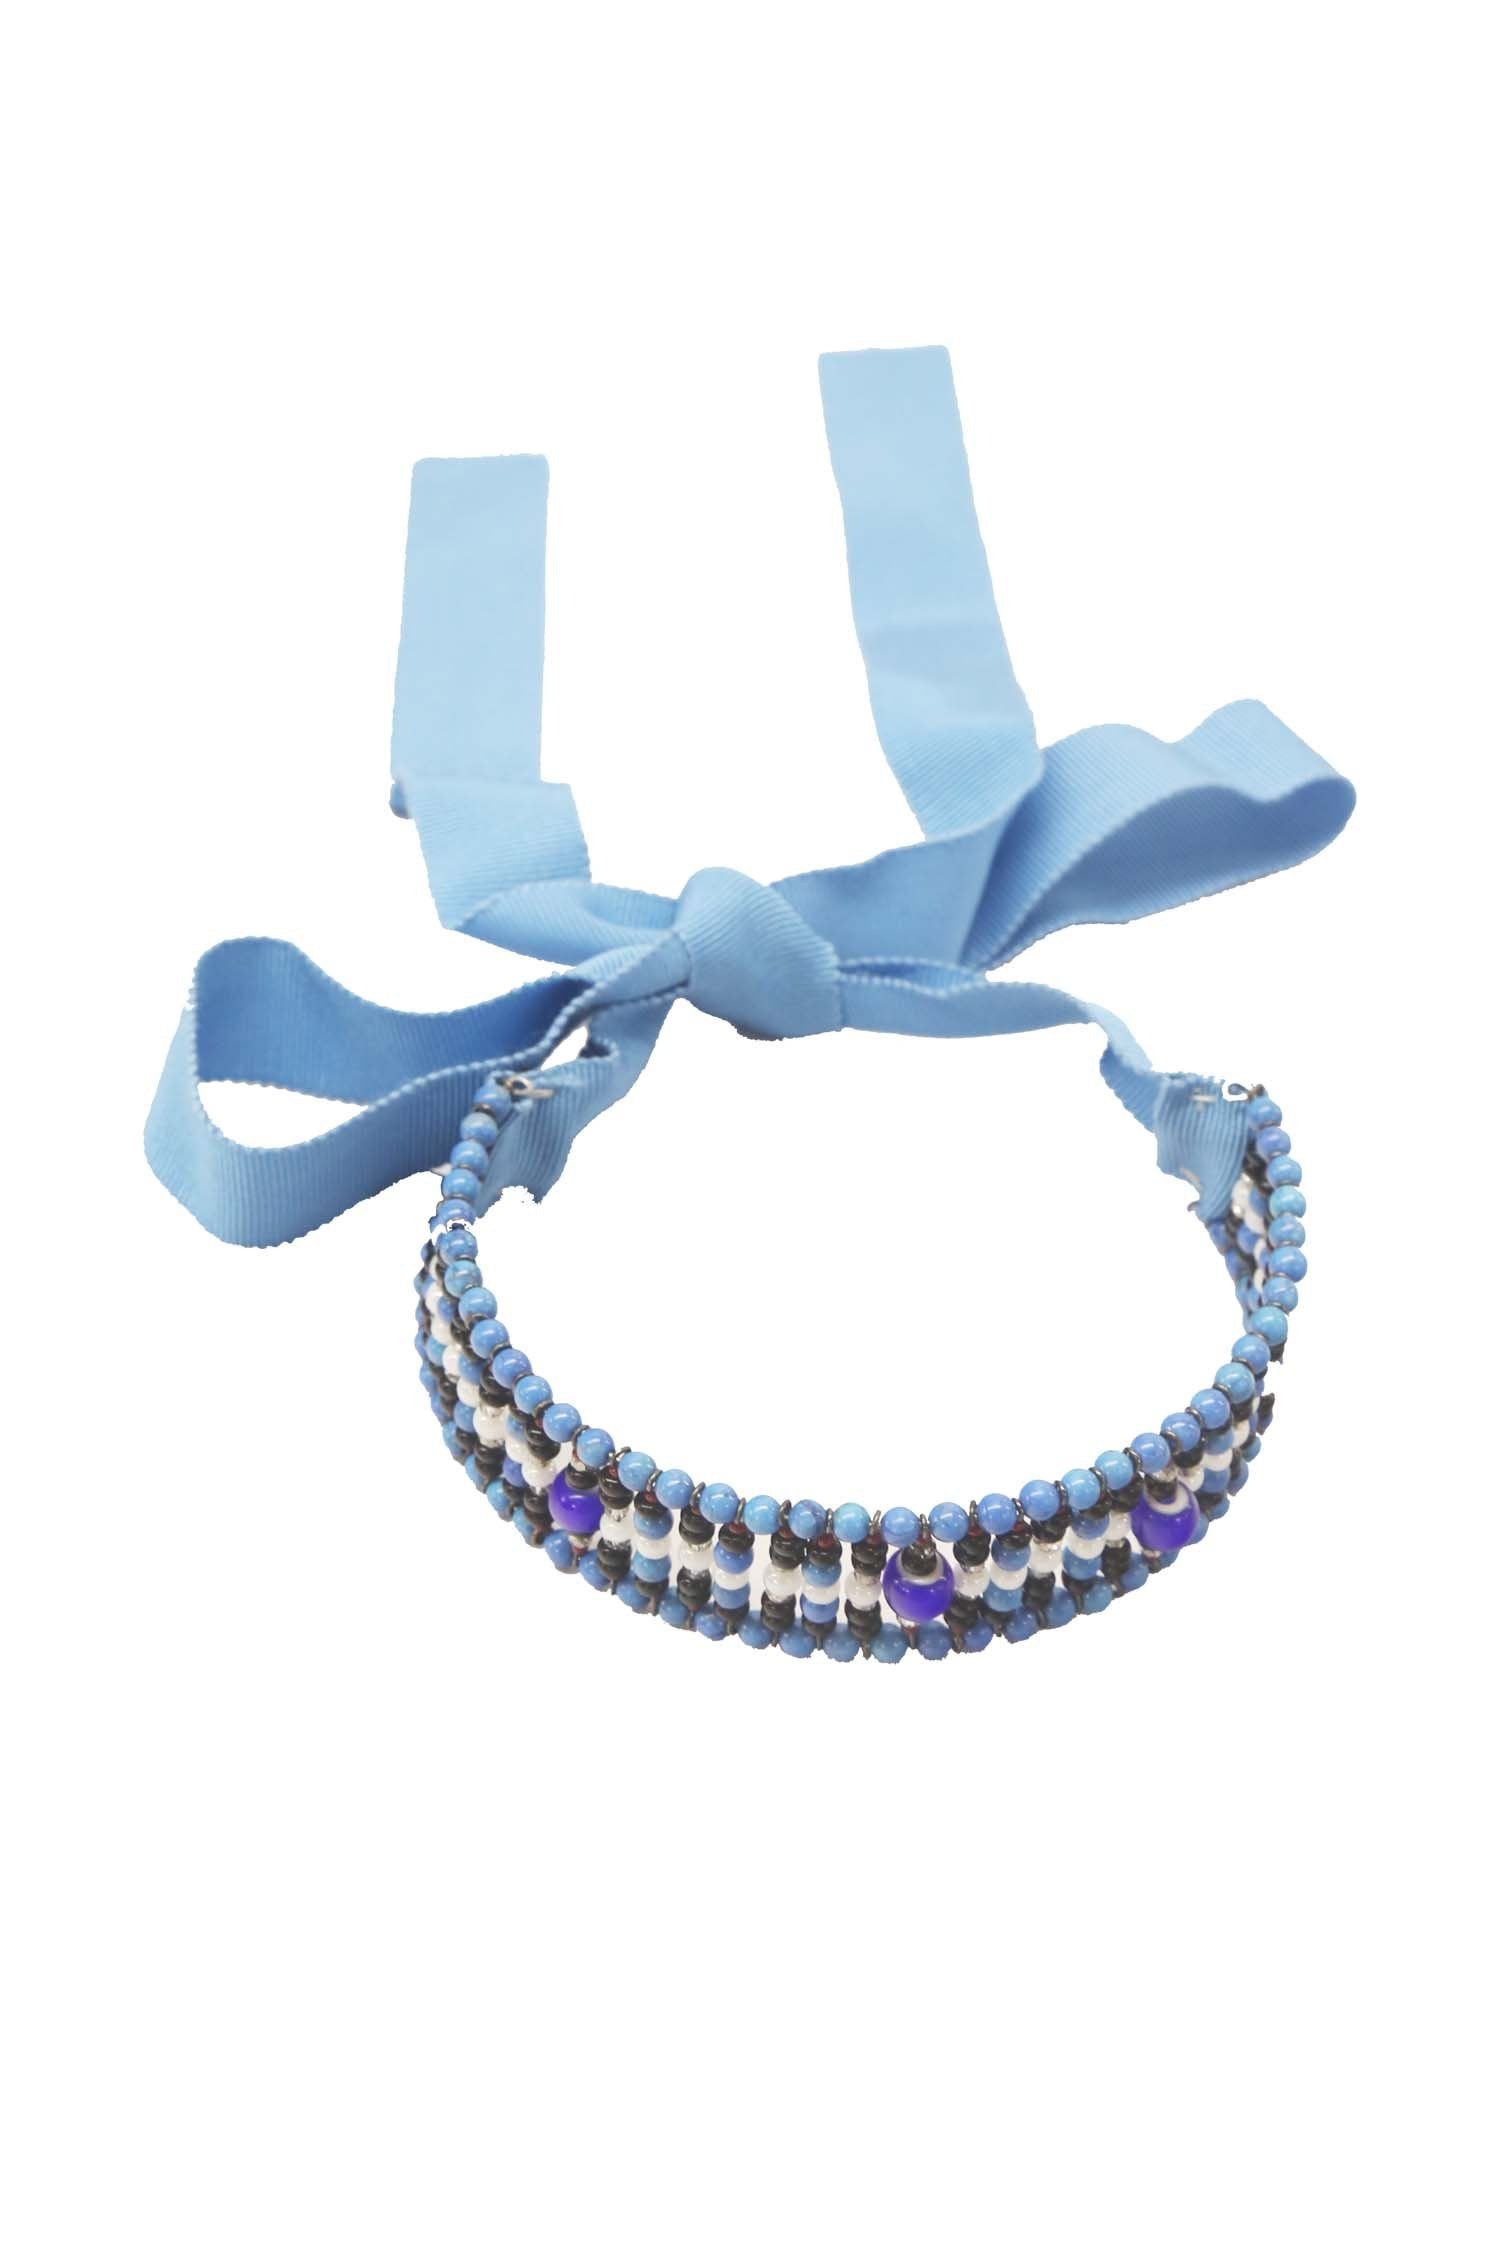 Erickson Beamon Light Blue Beaded Choker - Anna Sui